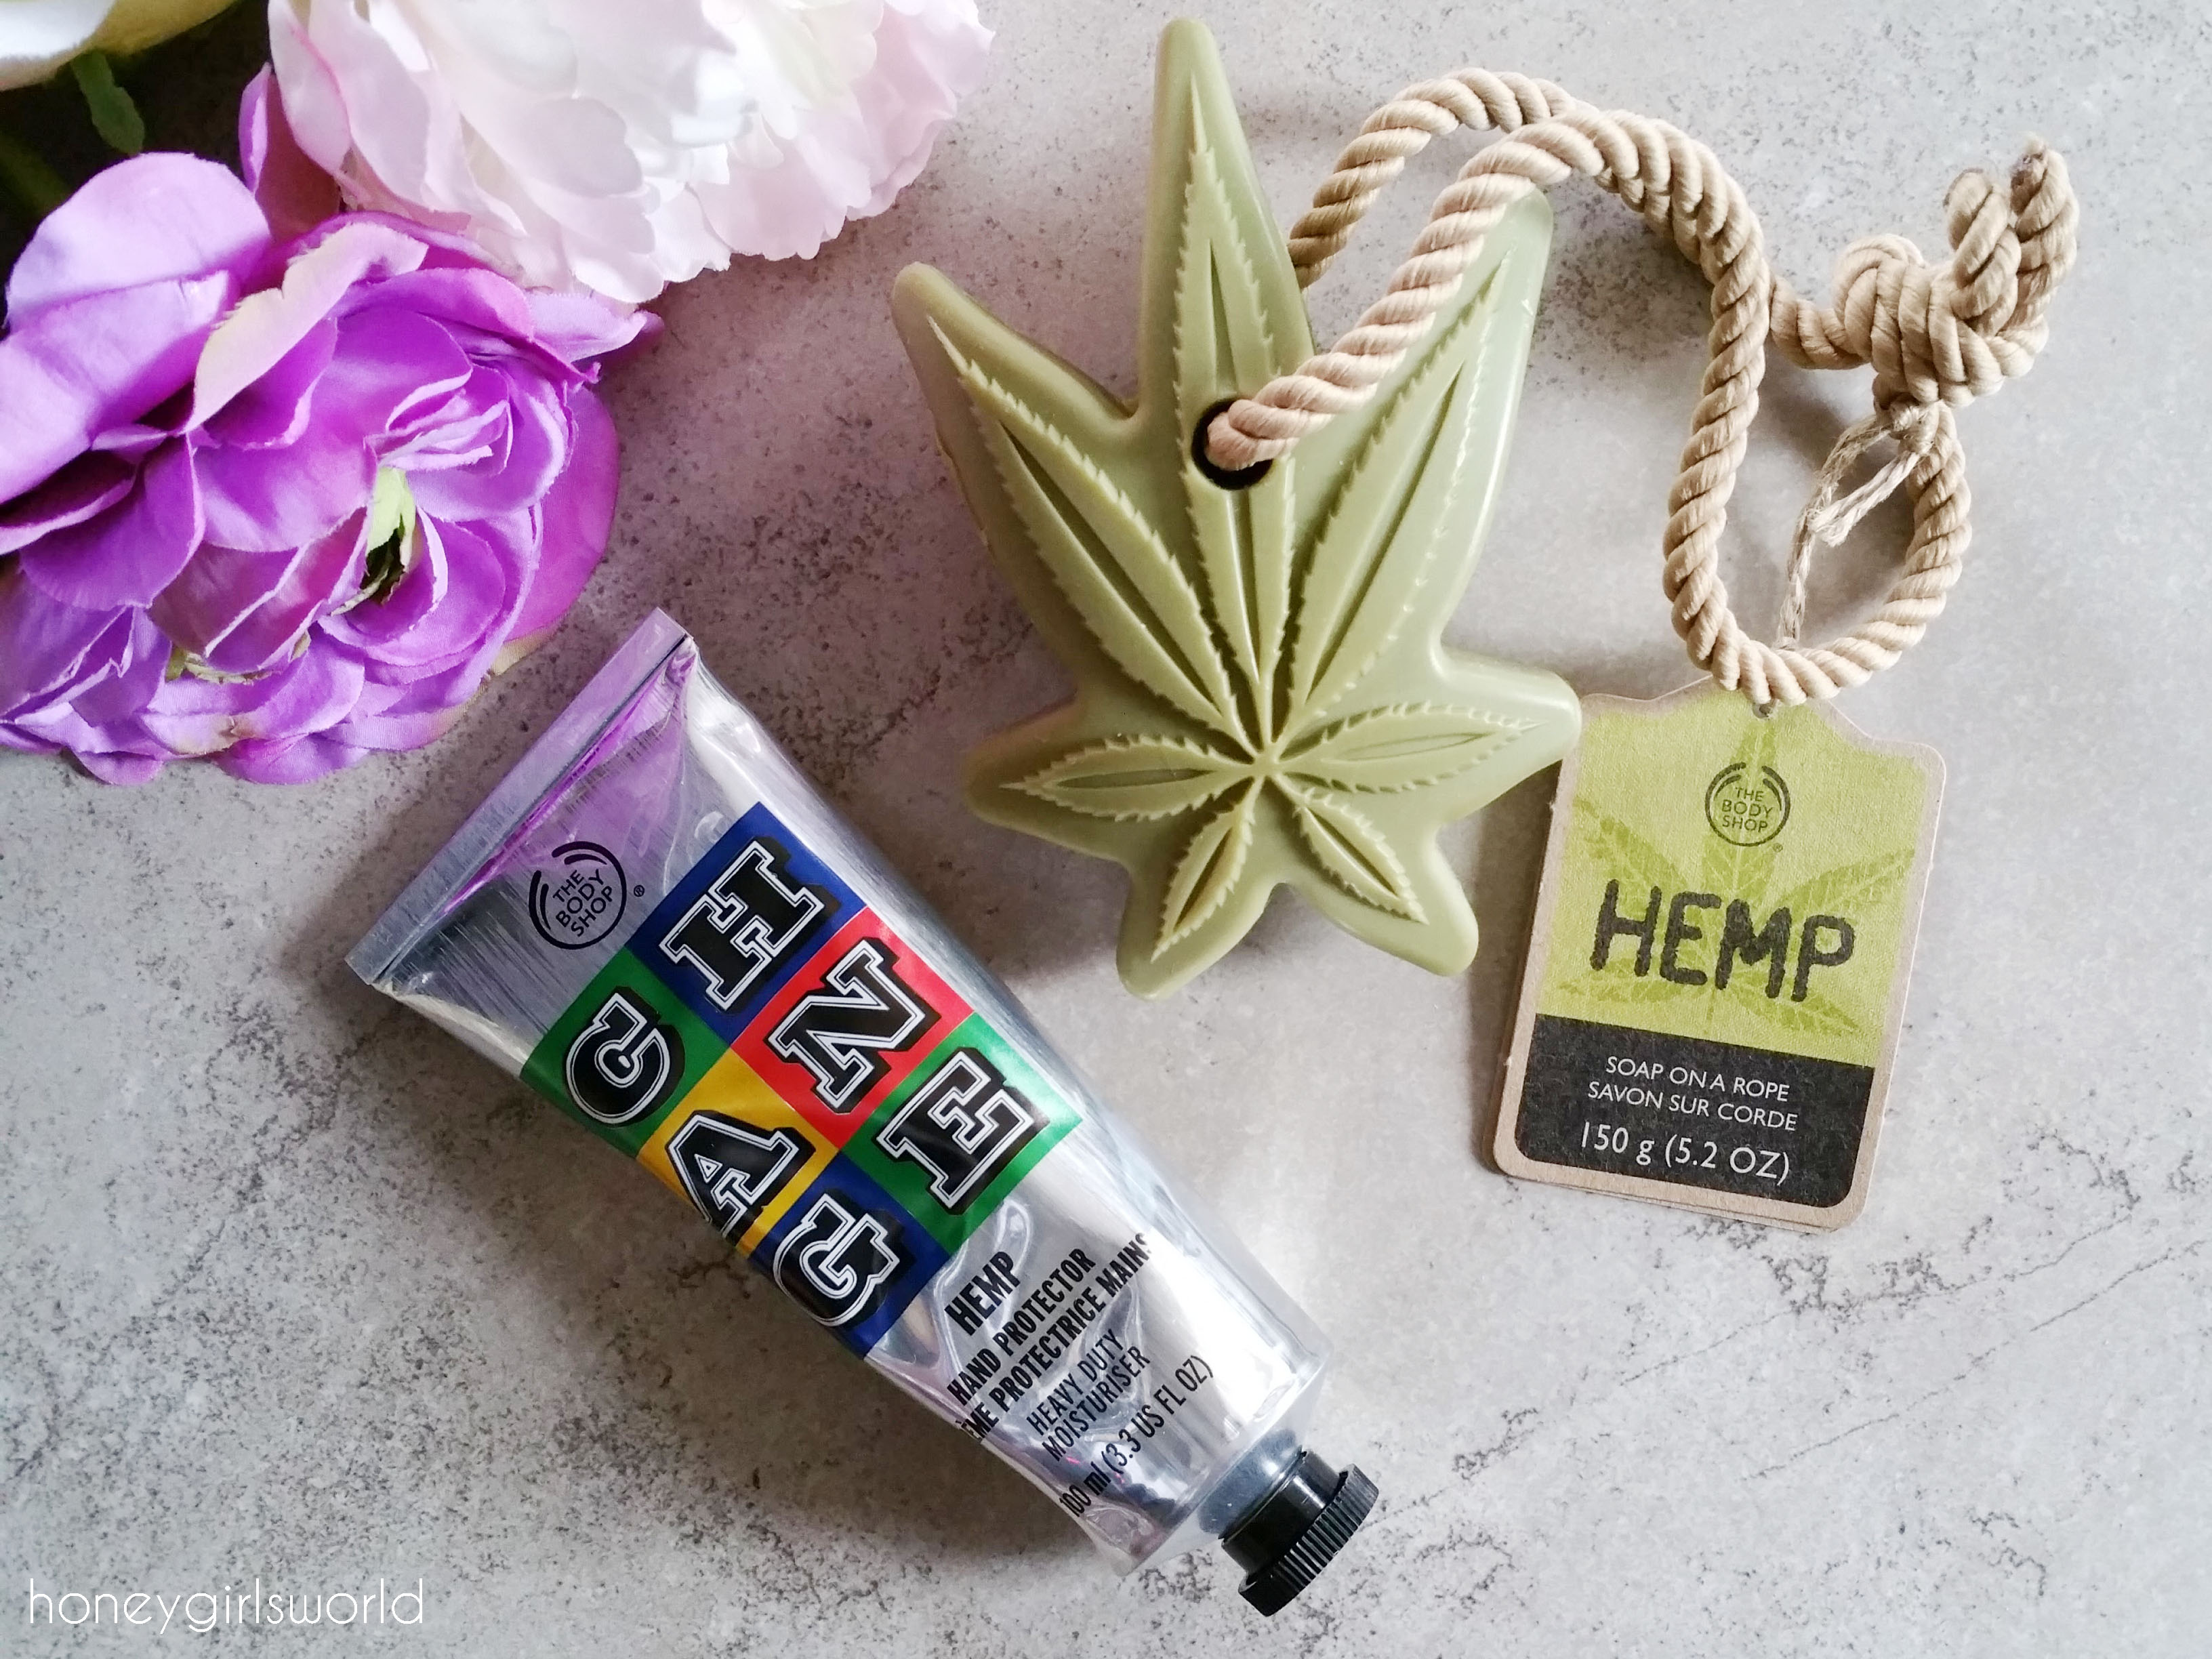 hemp hand protector, the body shop, hemp hand, protector, hand cream, lotion, body care, skin care, hemp products, hemp soap on a rope, beauty, review, enrich not exploit,